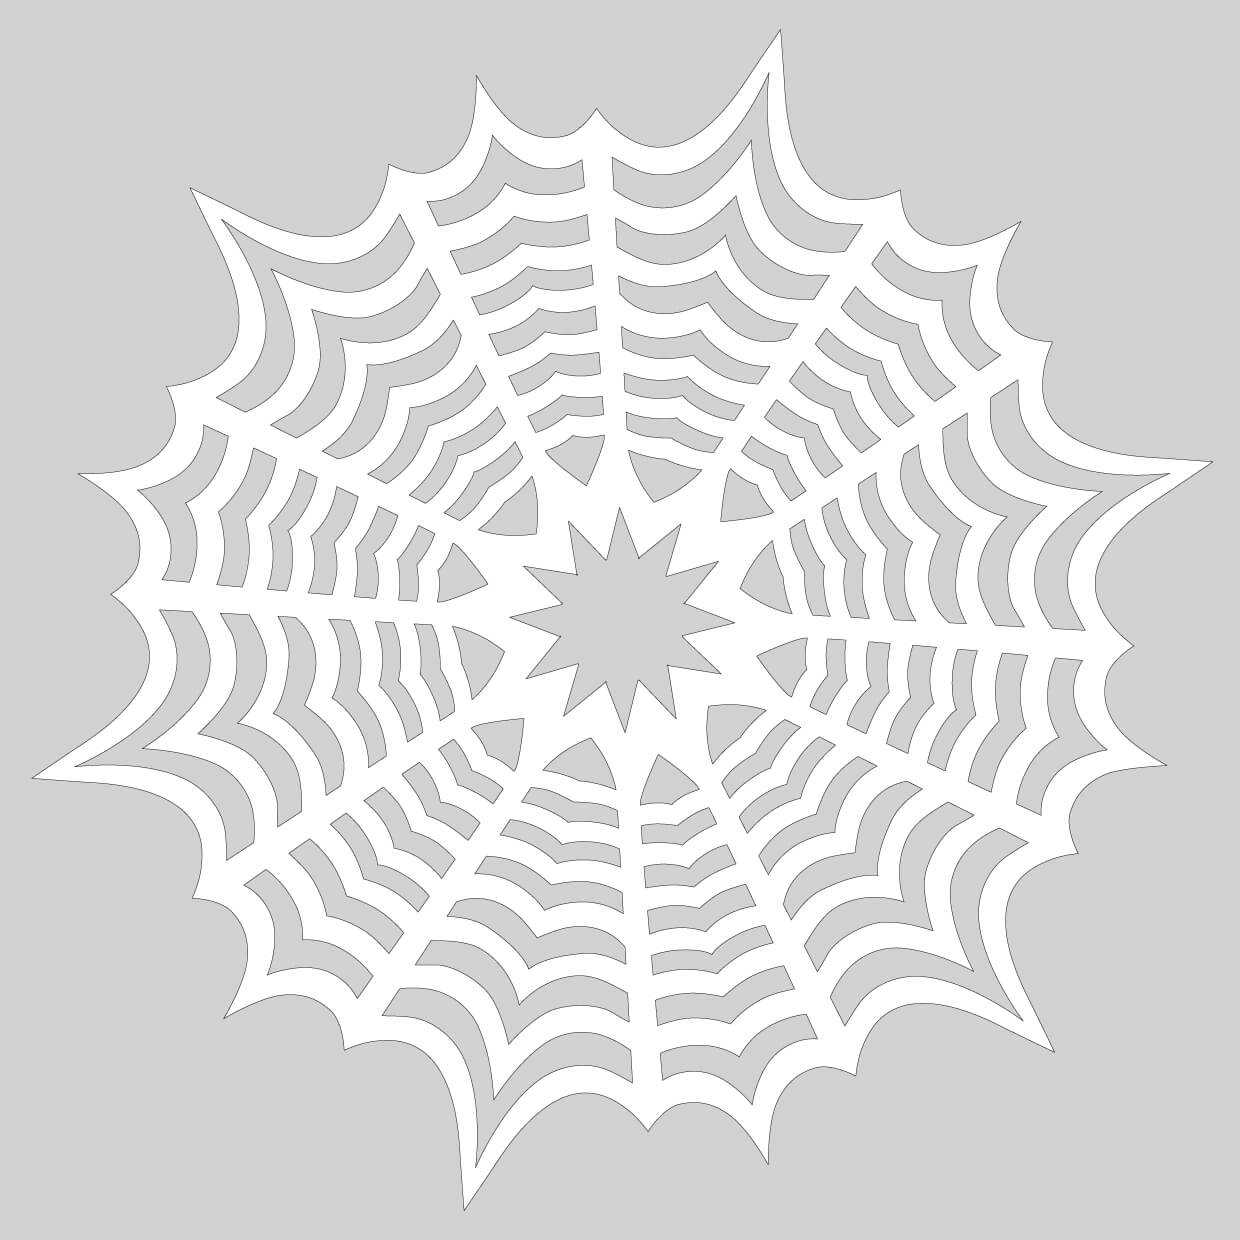 Blank Template To Draw A Pattern For Paper Snowflake   Free In Blank Snowflake Template